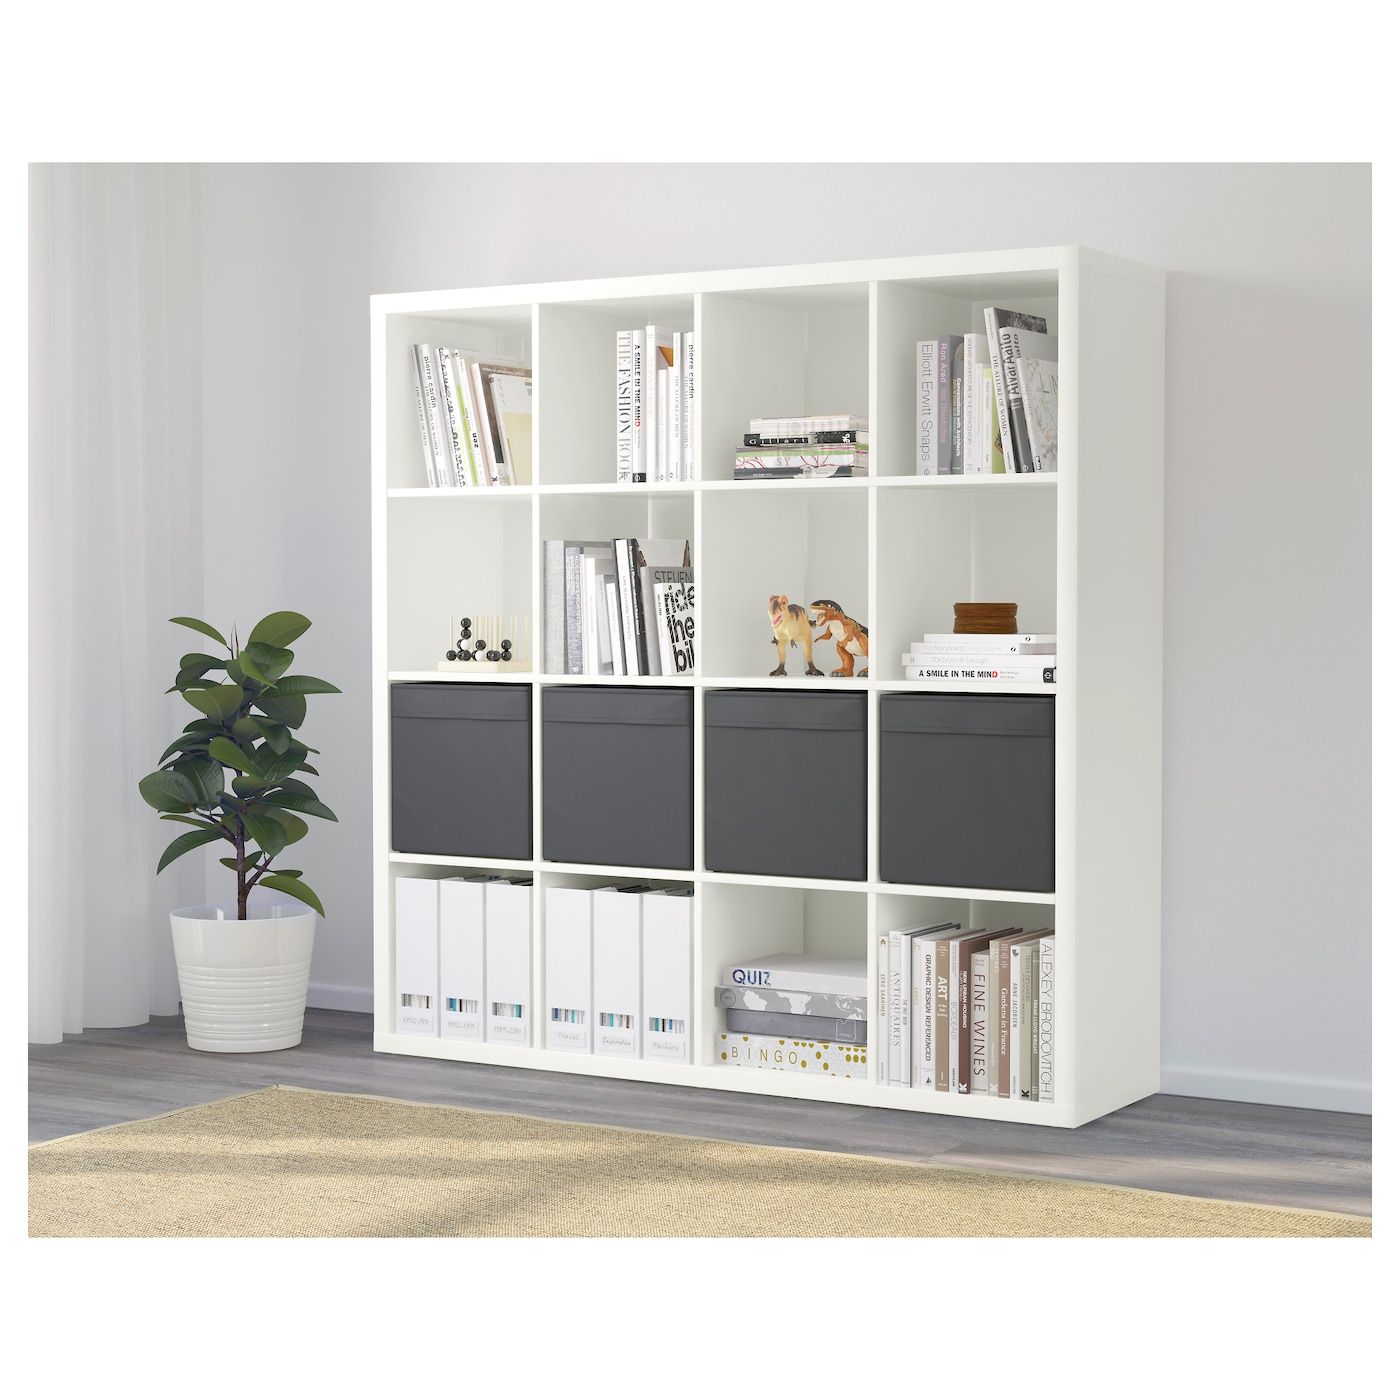 kallax shelving unit with 4 inserts white 147x147 cm ikea. Black Bedroom Furniture Sets. Home Design Ideas